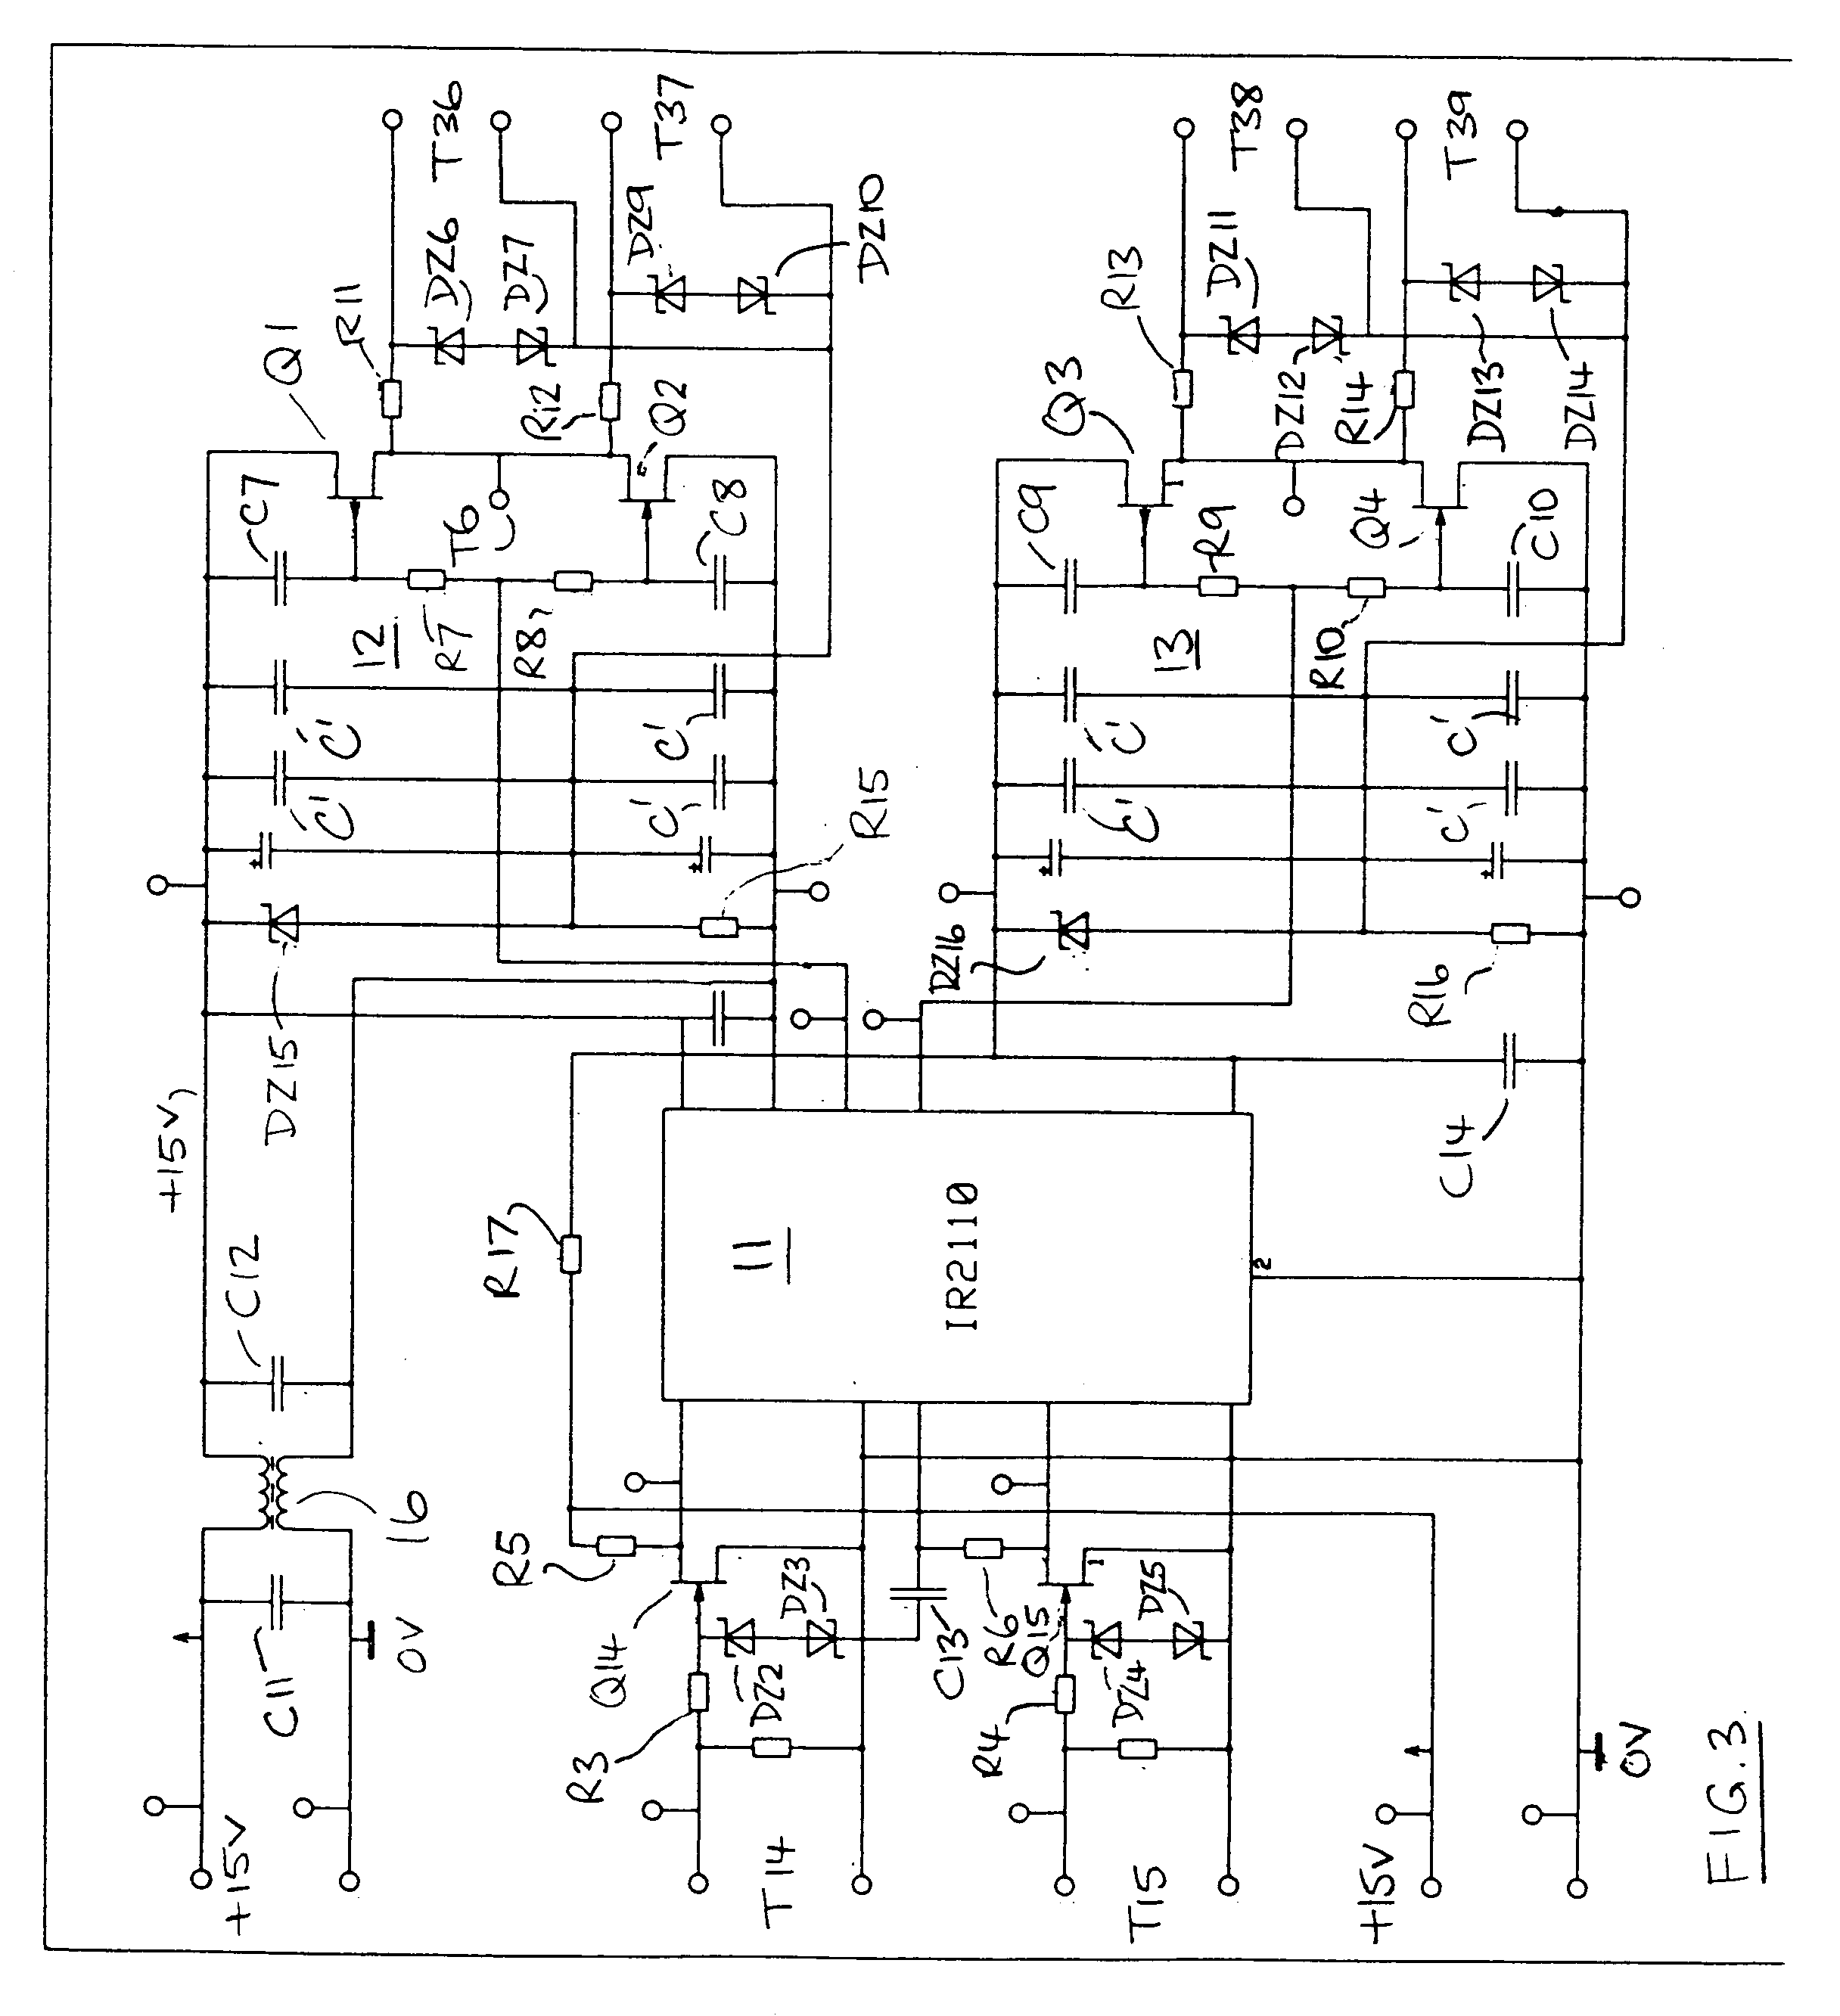 Welding Inverter Circuit Diagram